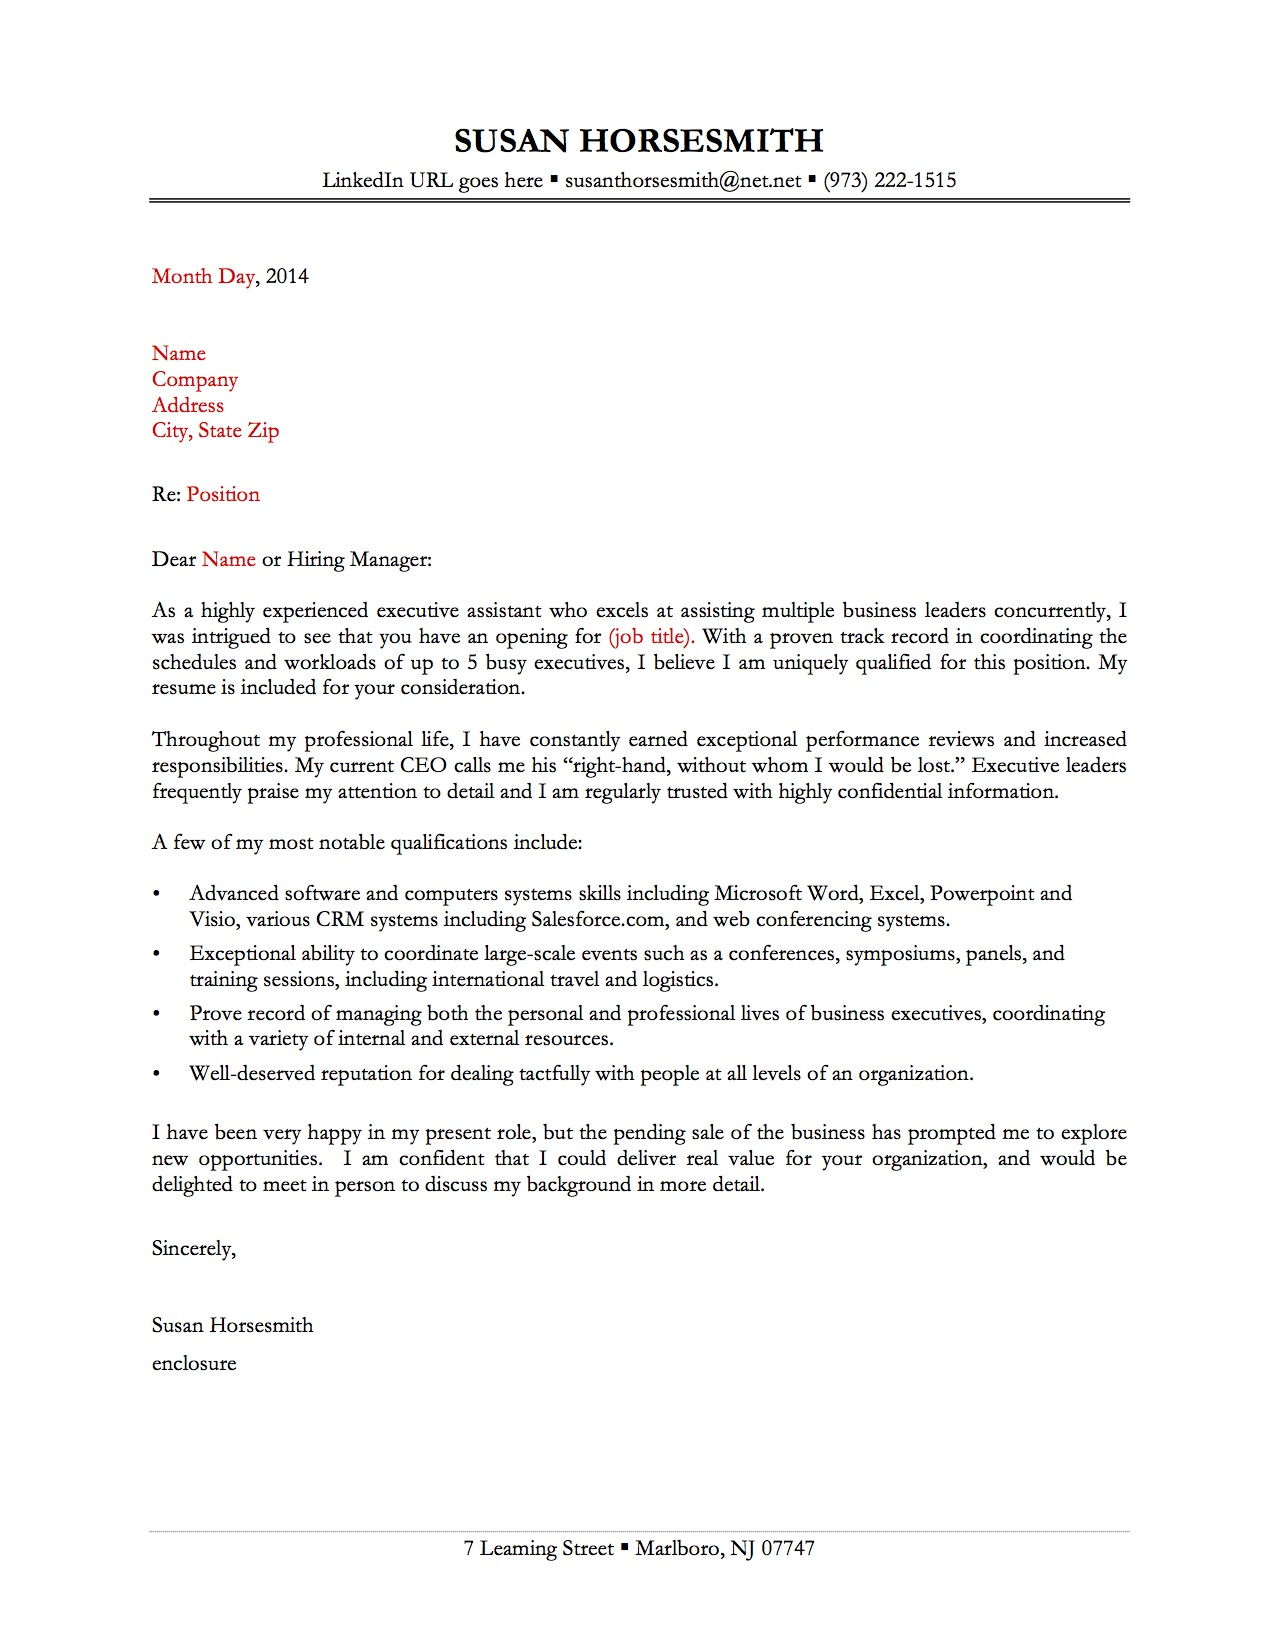 Two great cover letter examples blue sky resumes blog sample cover letter 1 altavistaventures